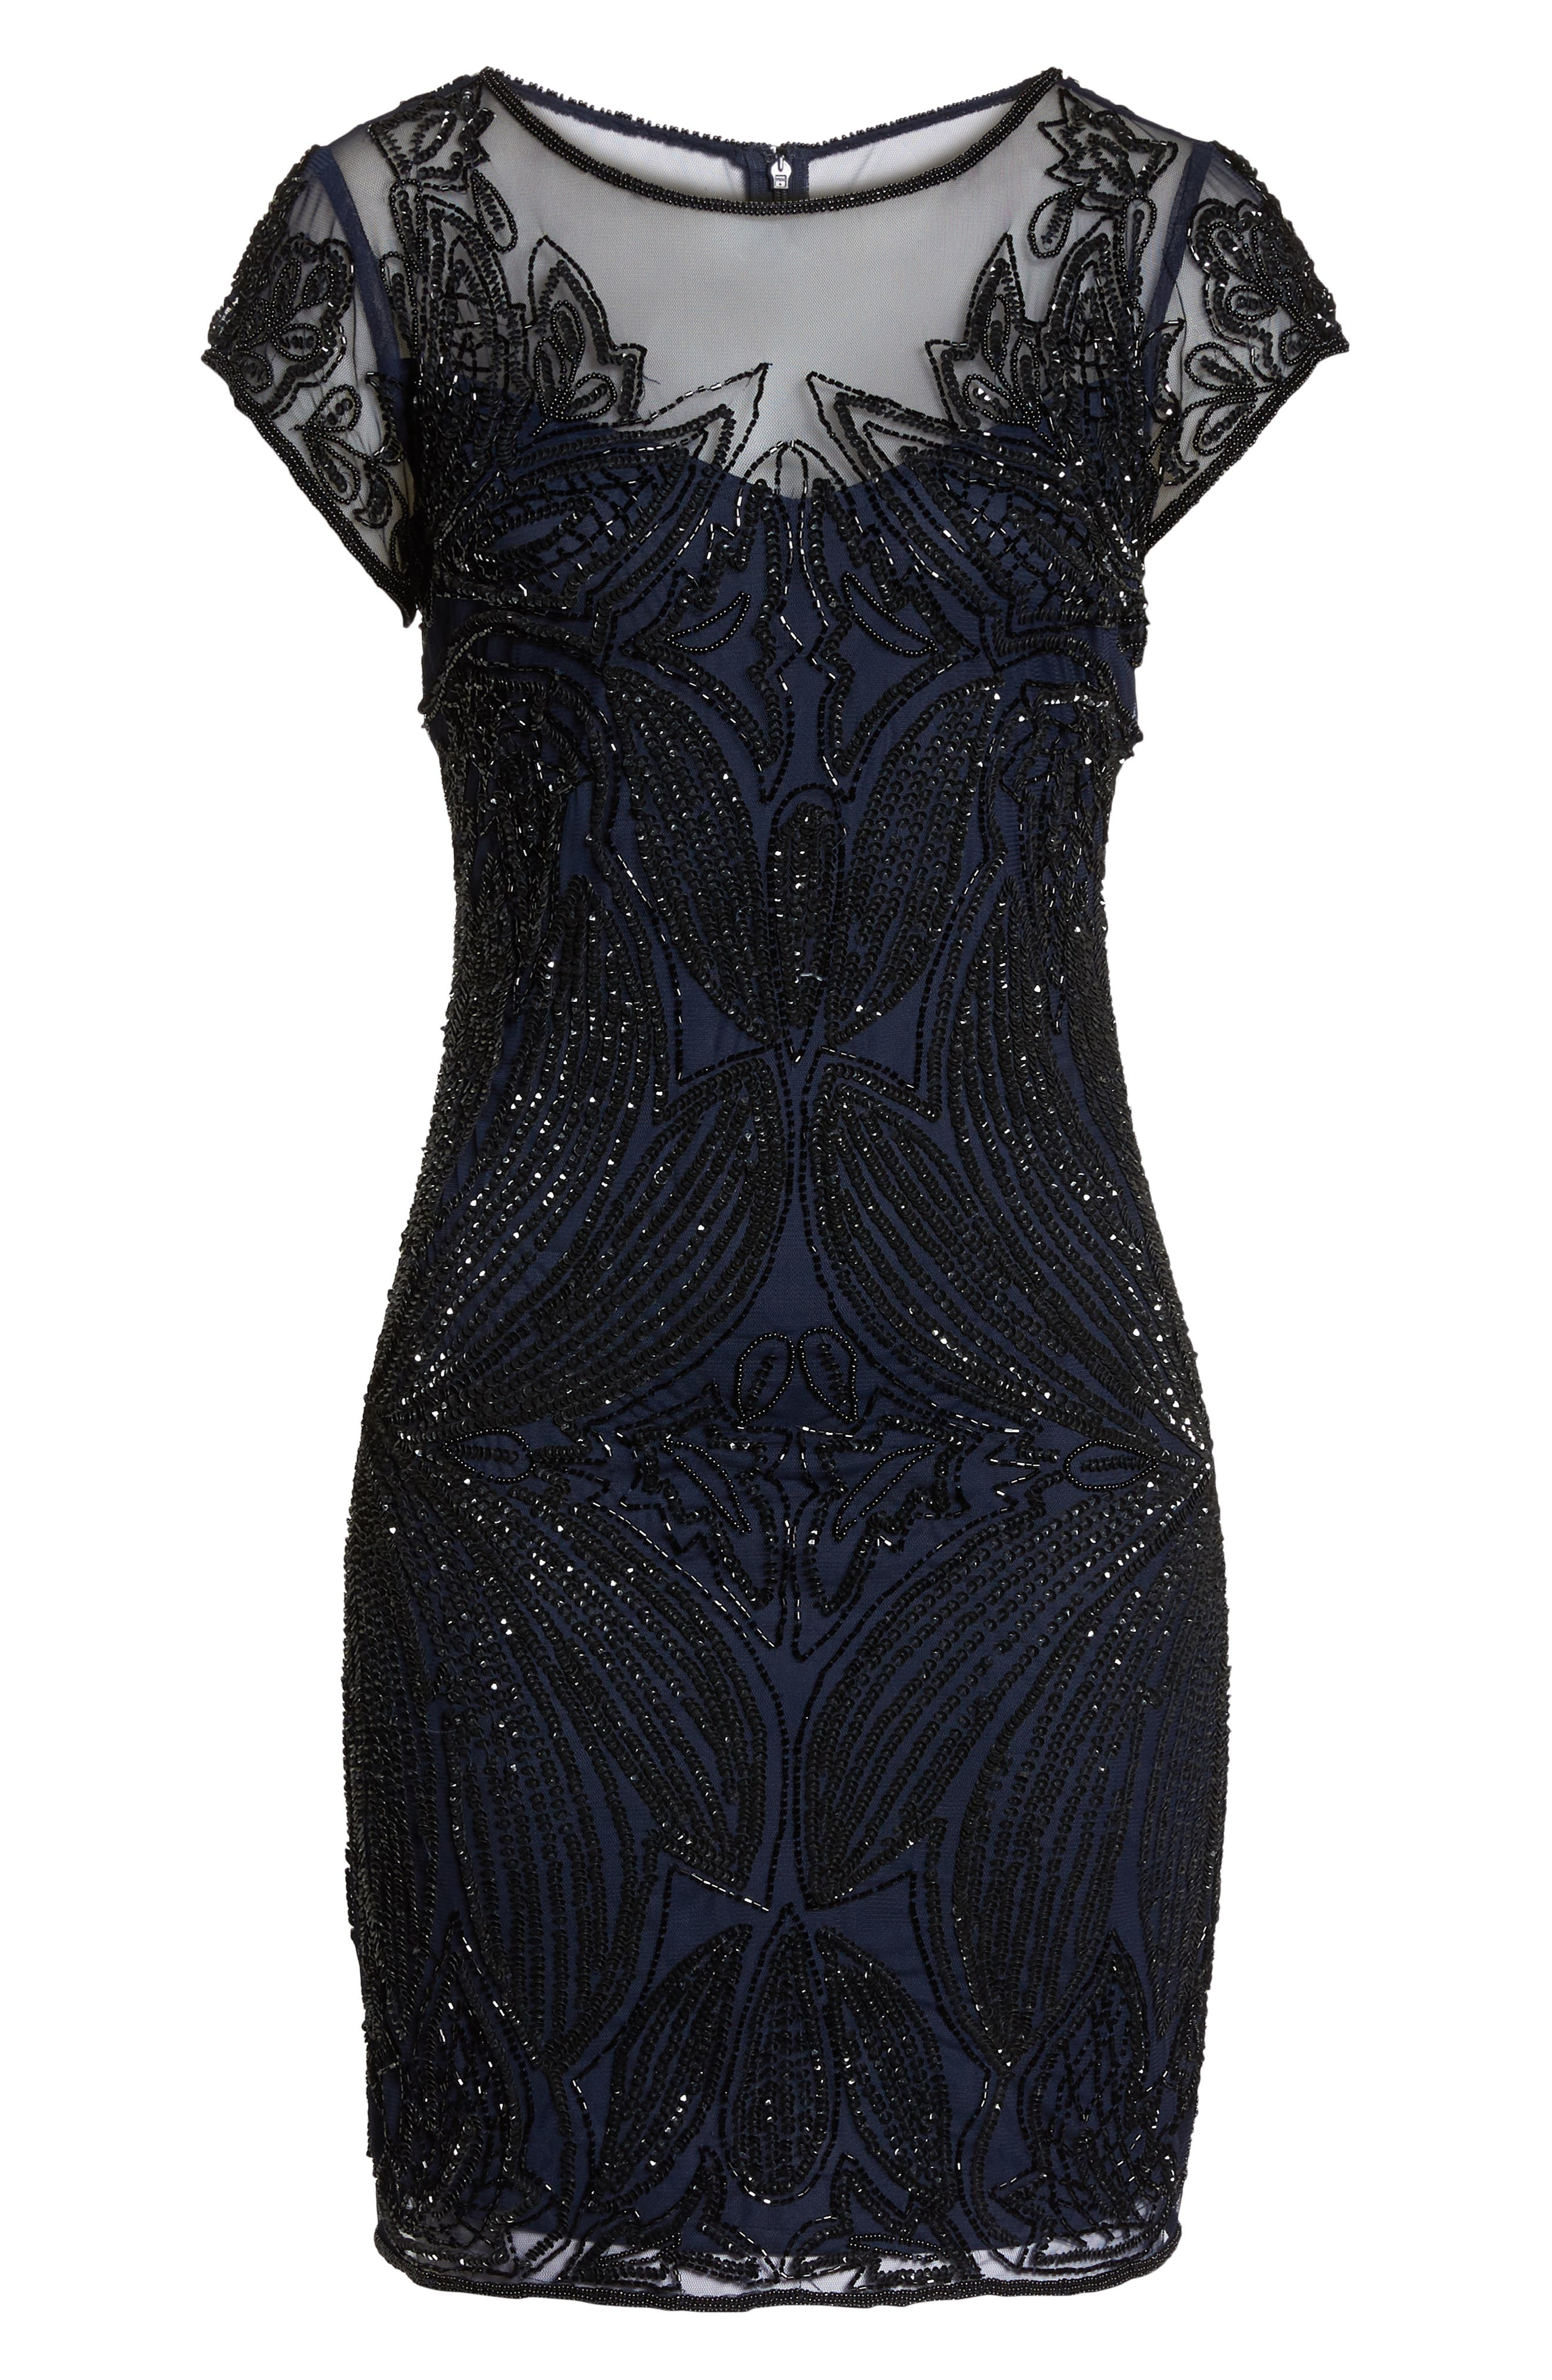 Beaded Illusion Yoke Sheath Dress,                             Alternate thumbnail 7, color,                             NAVY BLACK